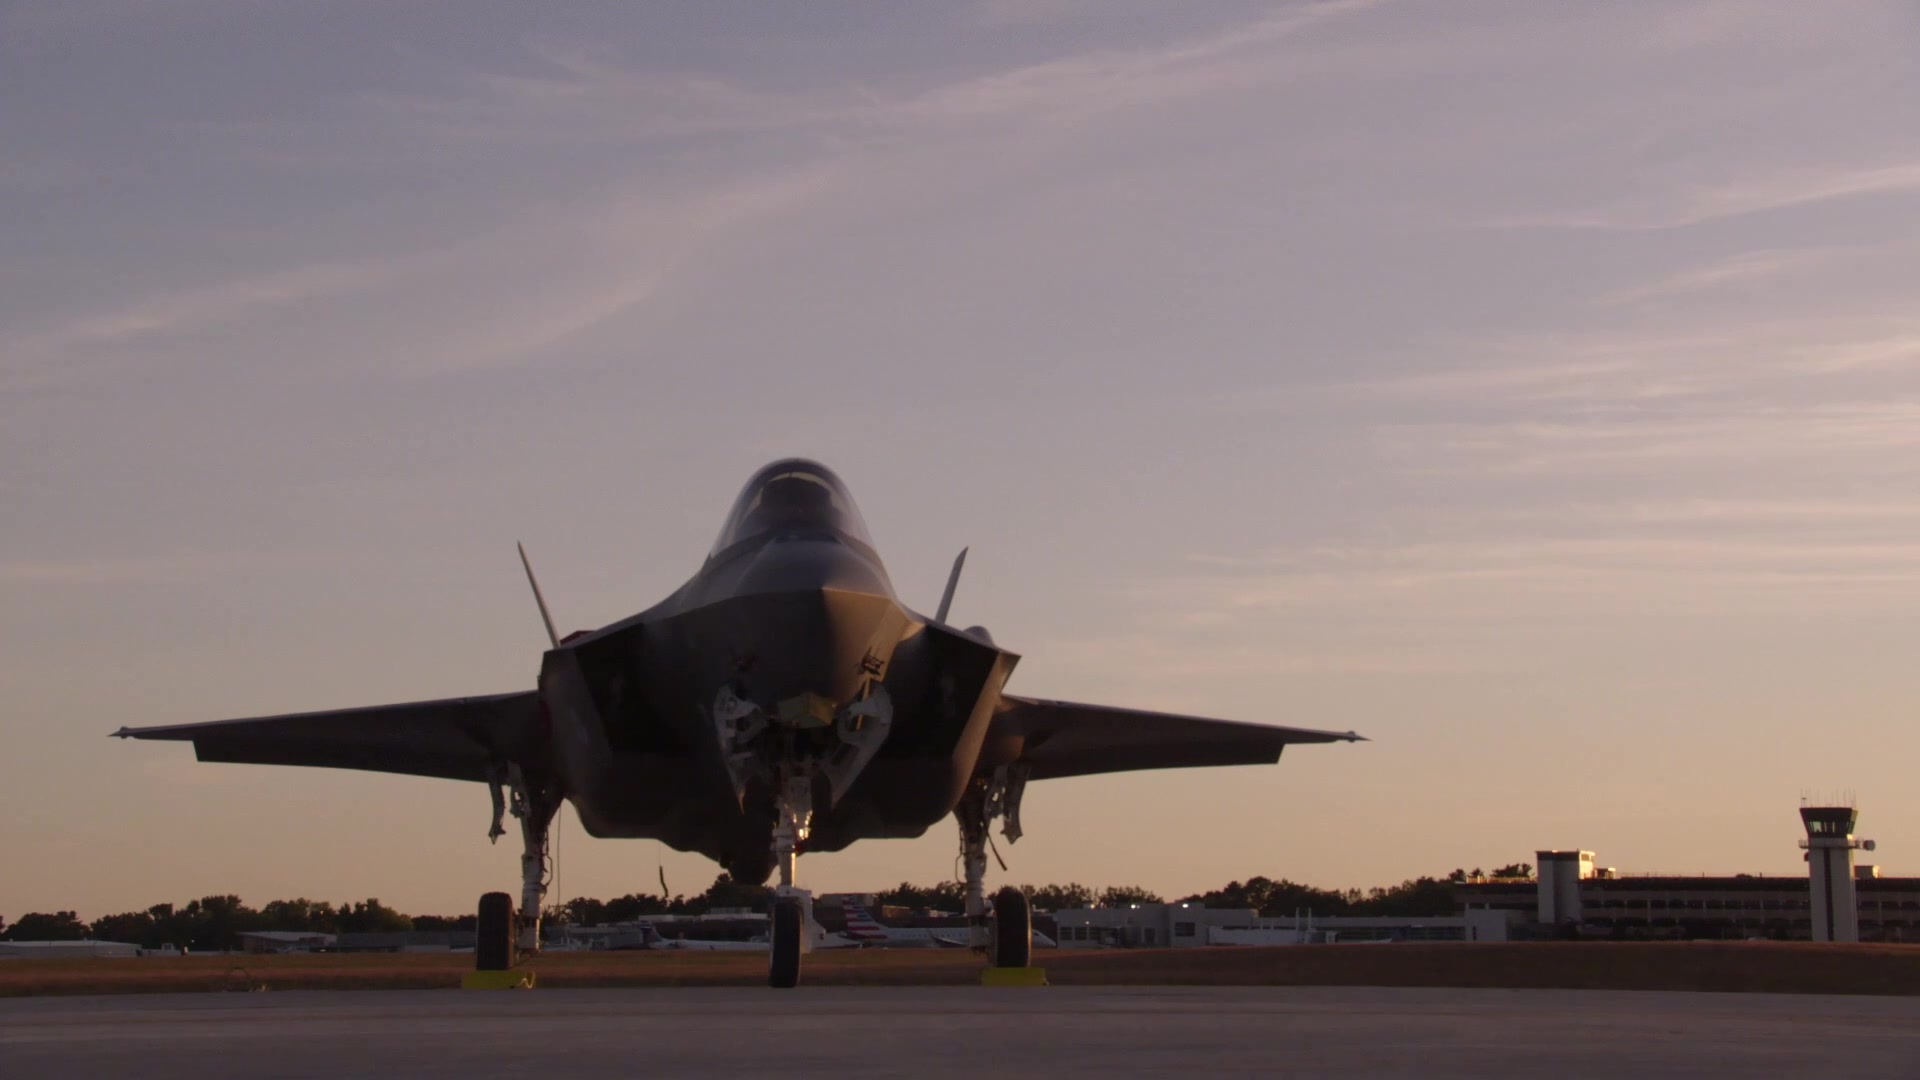 On September 19, 2019 history unfolded as the 158th Fighter Wing became the first Air National Guard unit to receive the F-35 Lightning II.